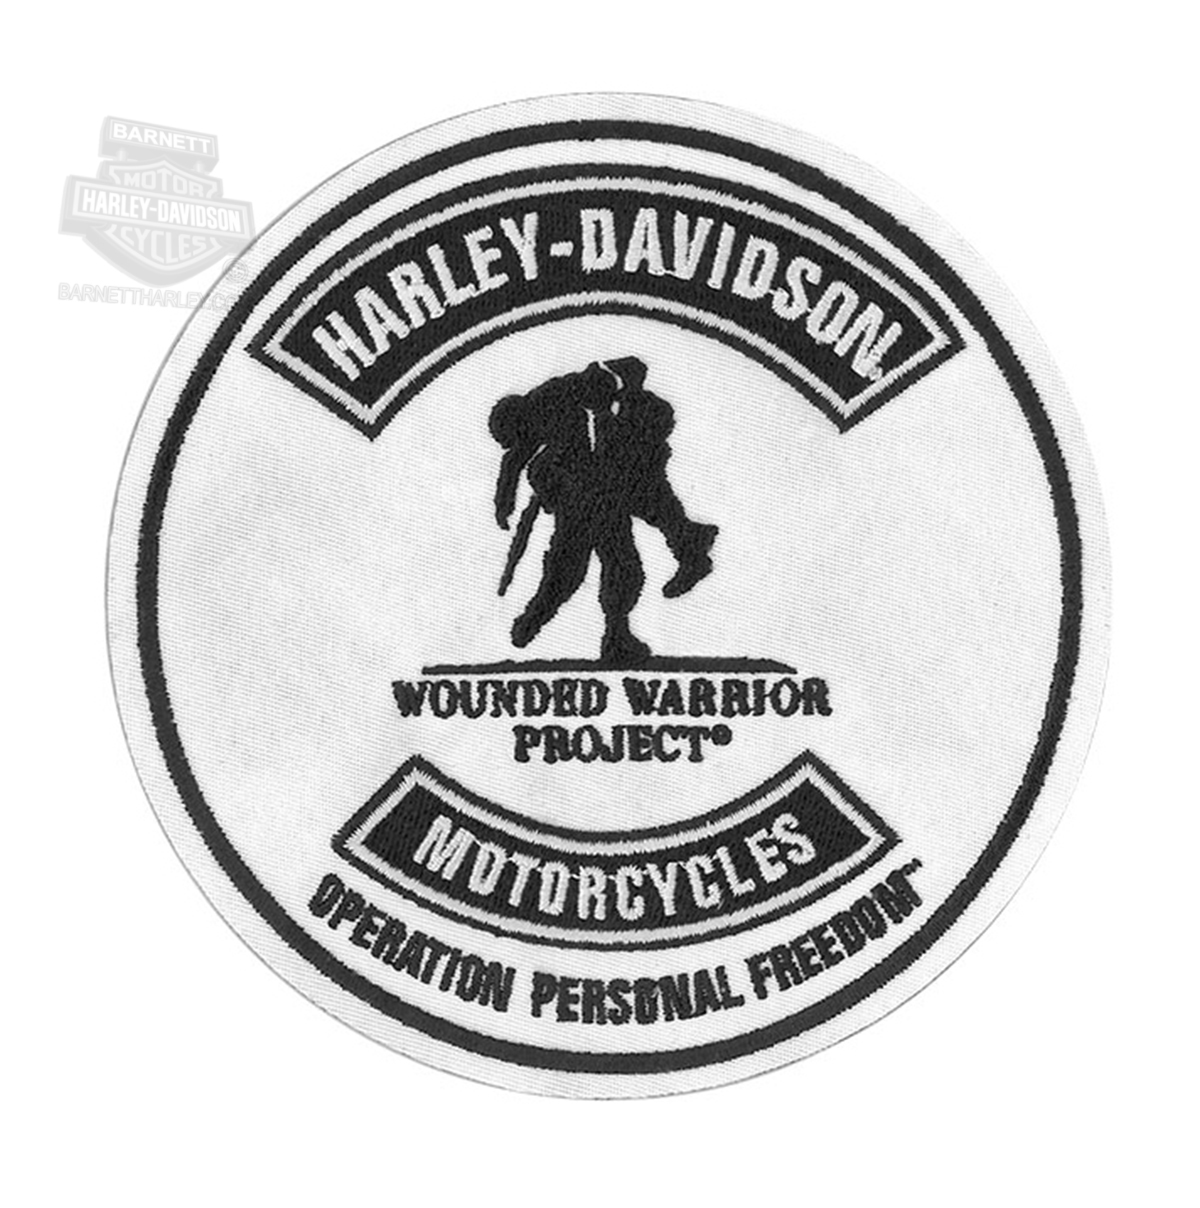 Harley Davidson 174 Mens Wounded Warrior Project 174 Round Patch